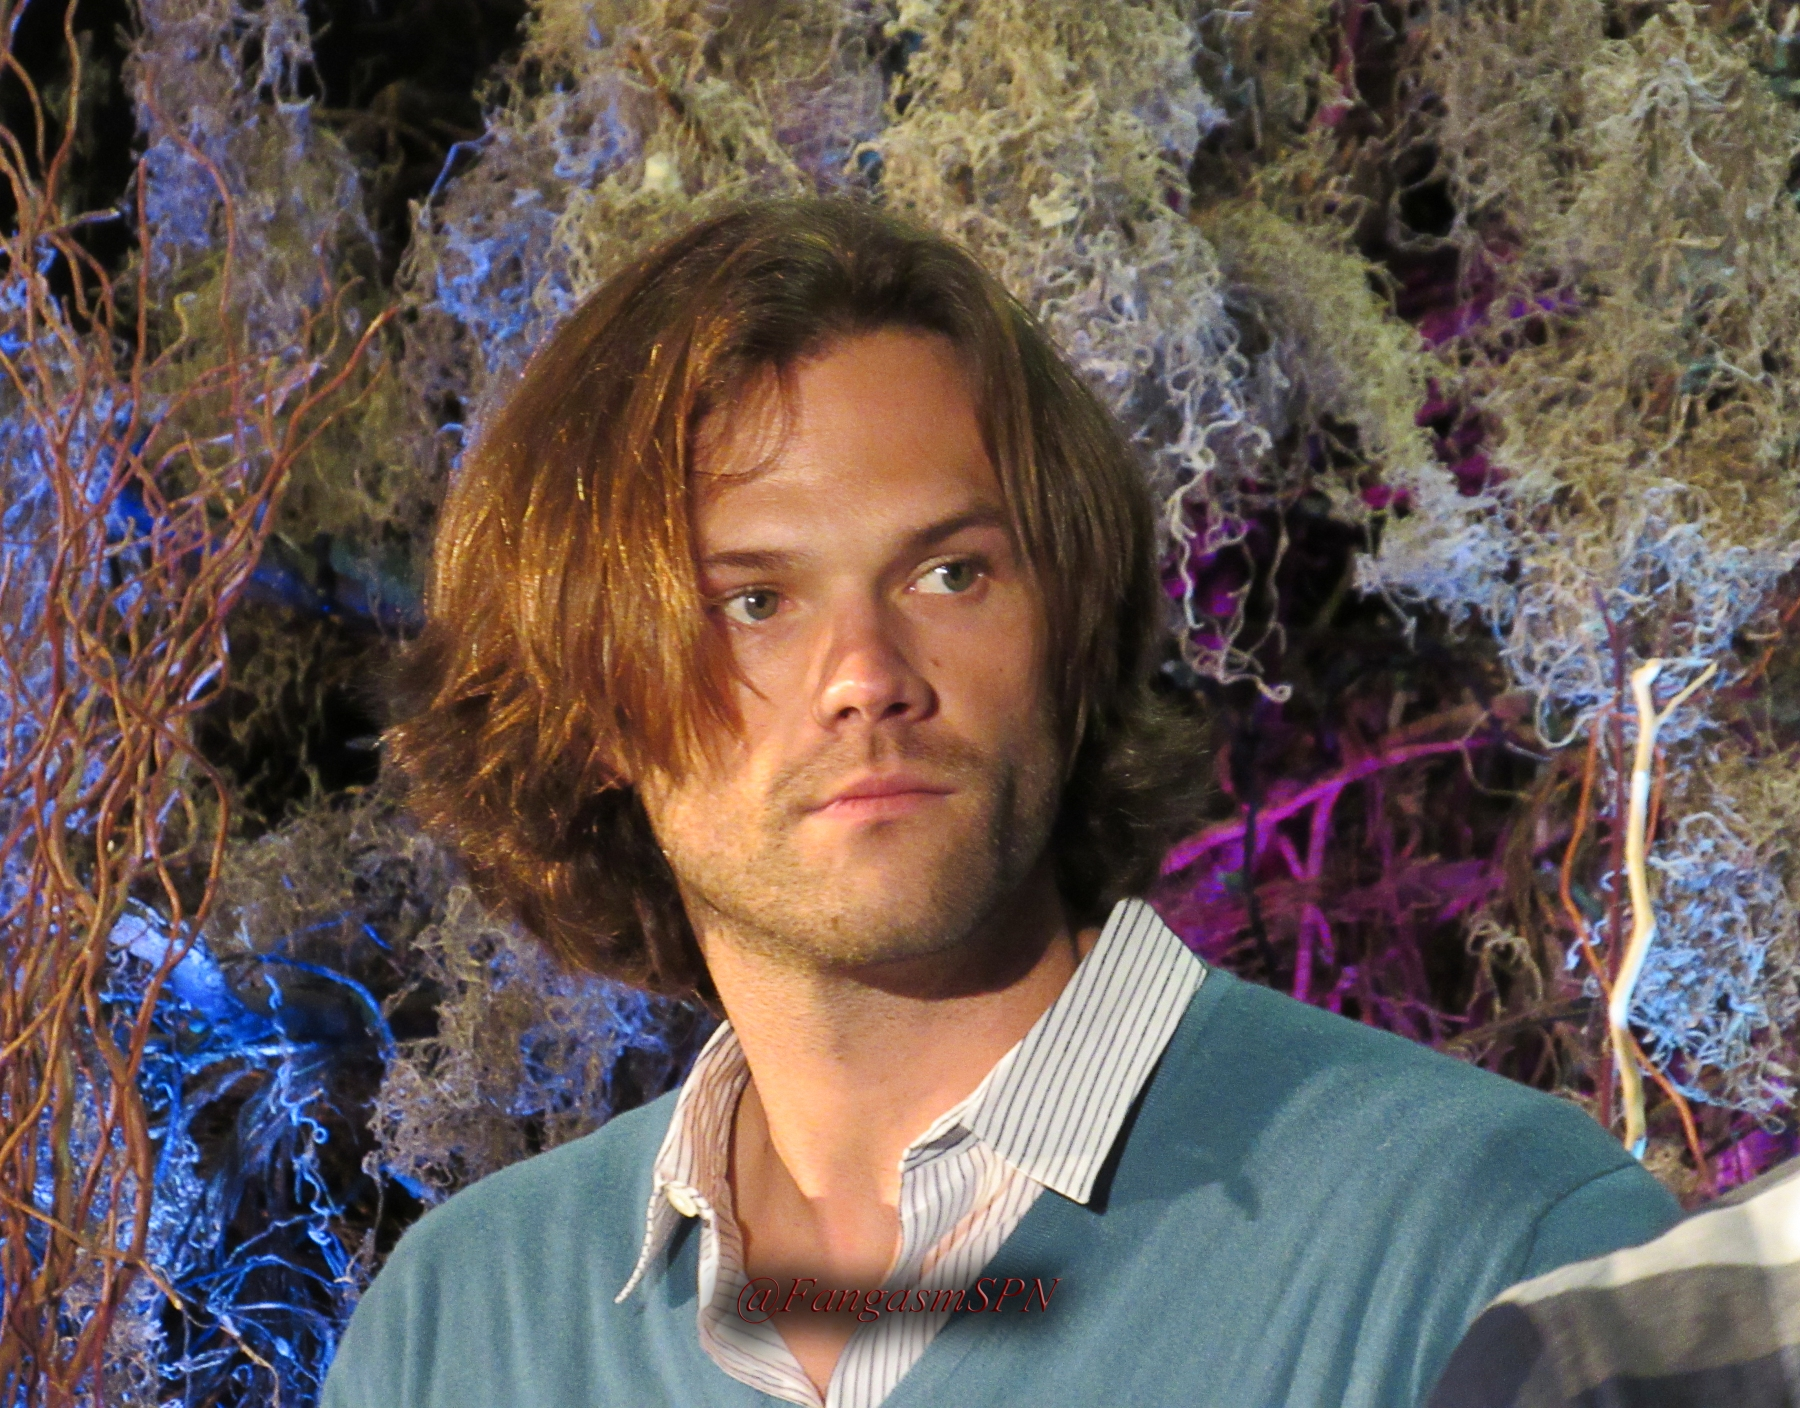 https://fangasmthebook.files.wordpress.com/2015/10/torcon_2015_334_wm.jpg?w=1800&h=1410